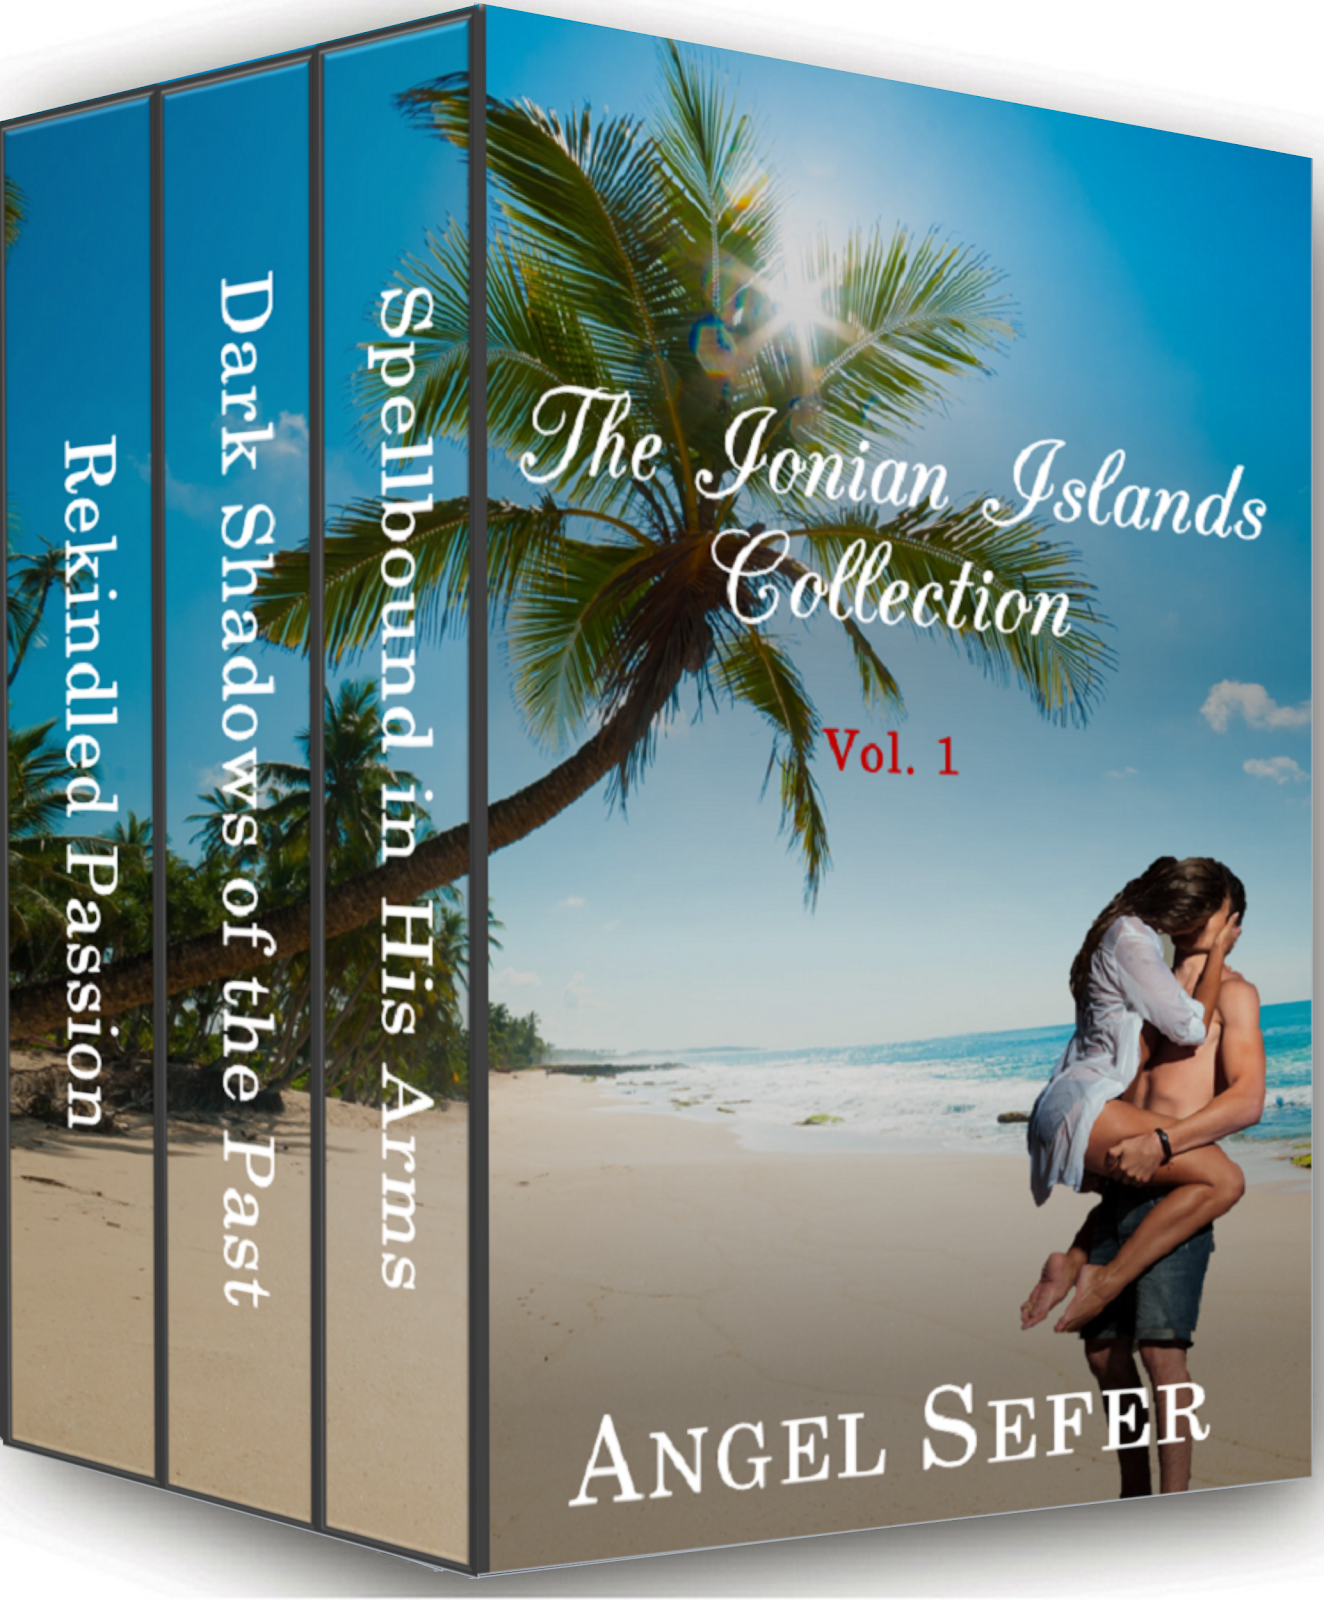 The Ionian Islands Collection Vol. 1